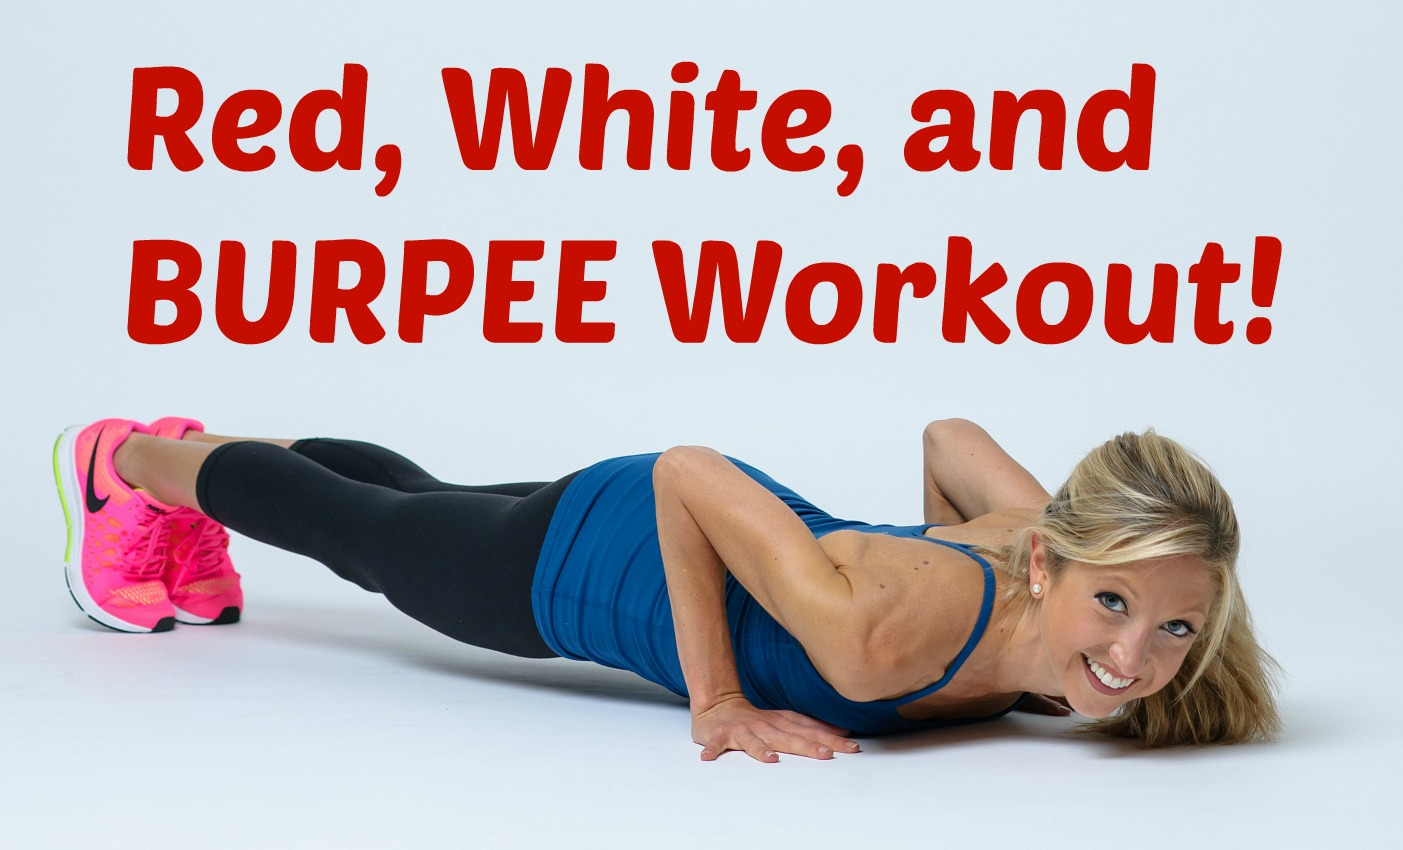 Red, White, and Burpee!